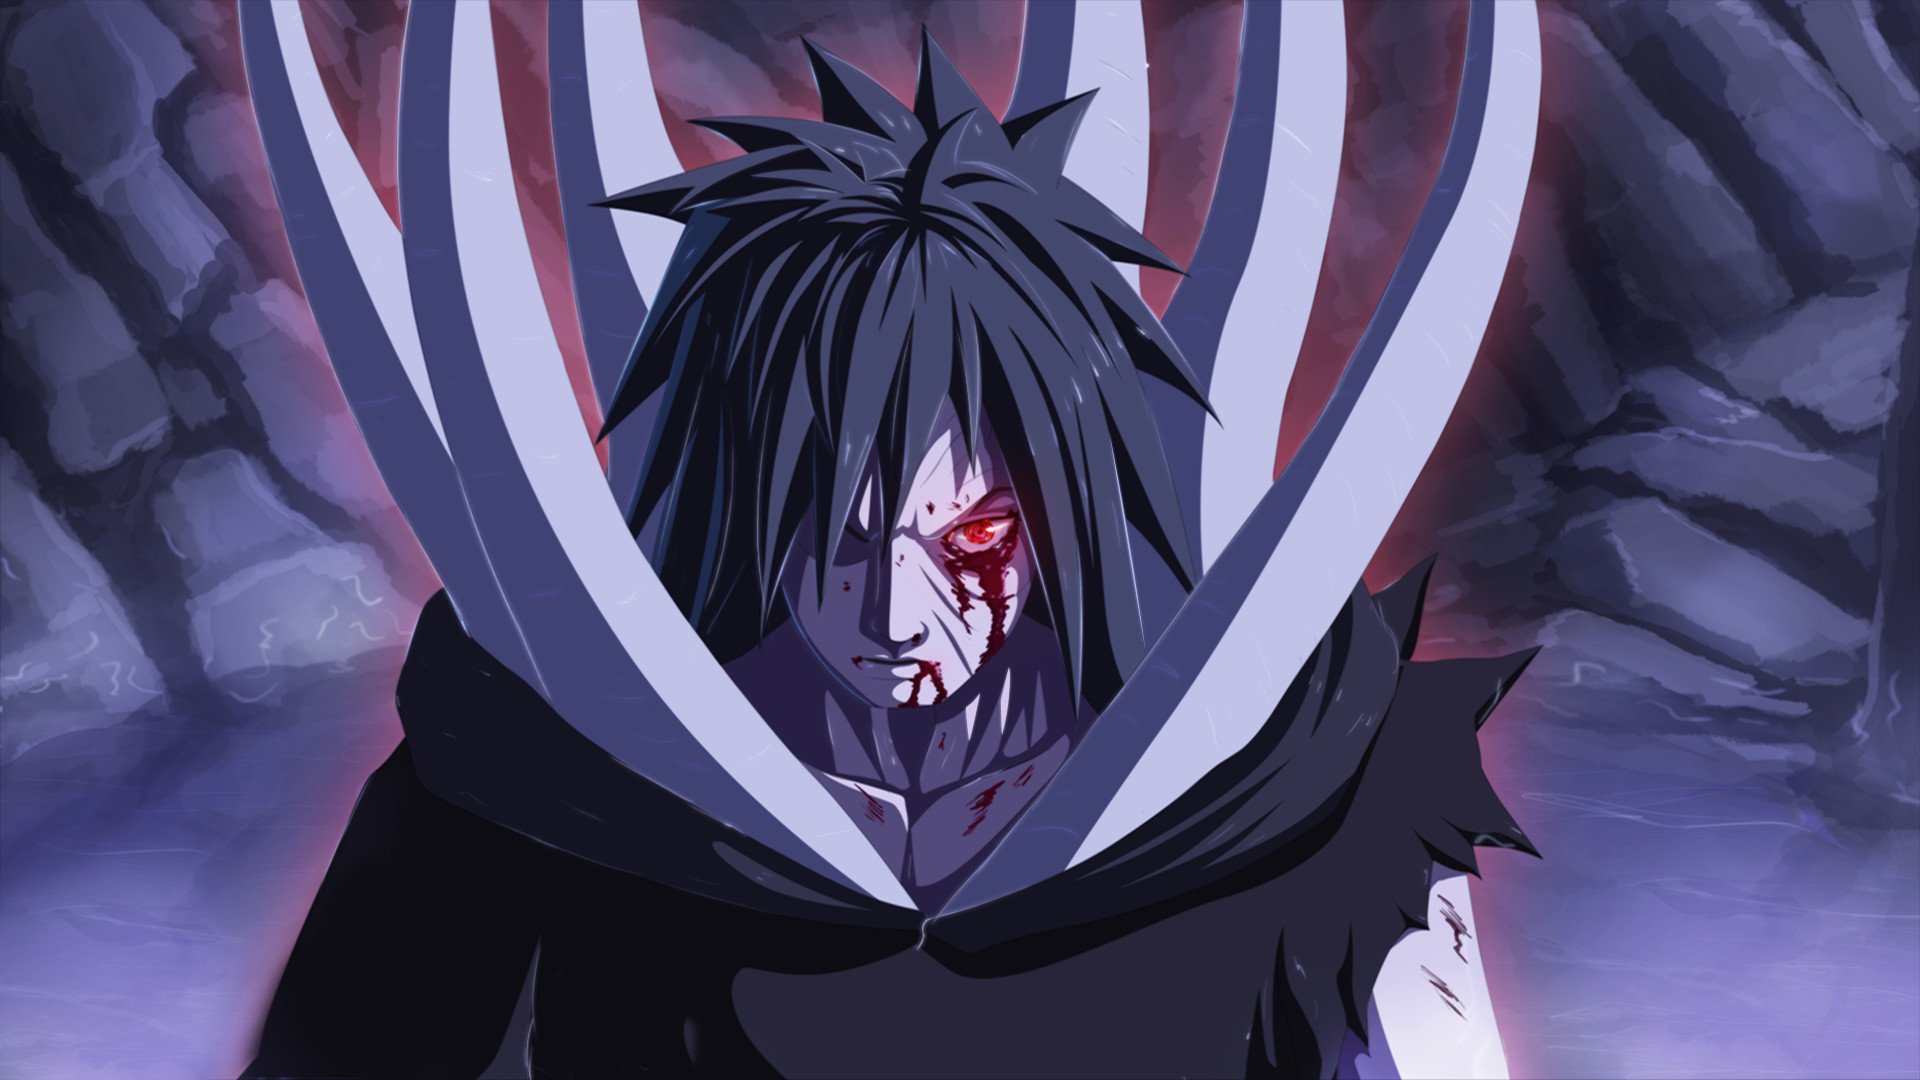 Obito Uchiha Wallpaper 65 images 1920x1080